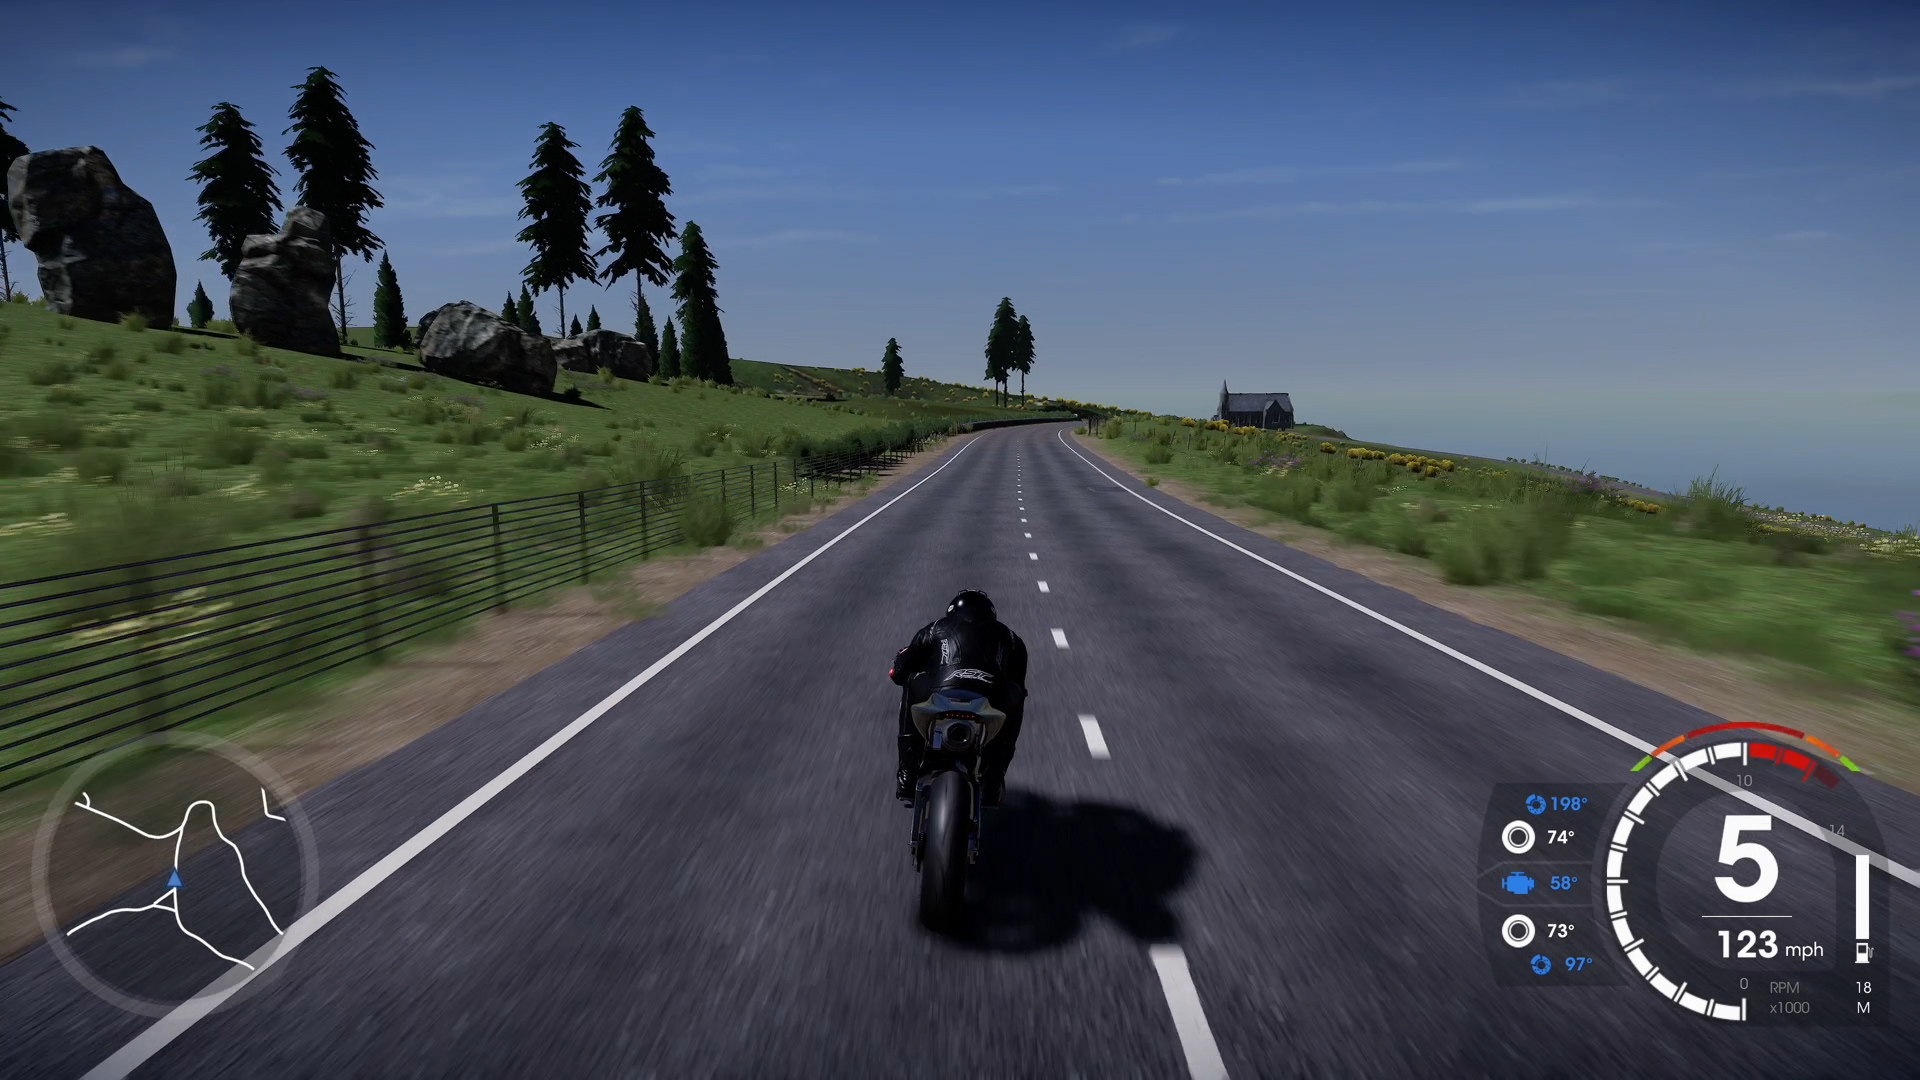 TT Isle of Man: Ride on the Edge 2 review - Open world gameplay